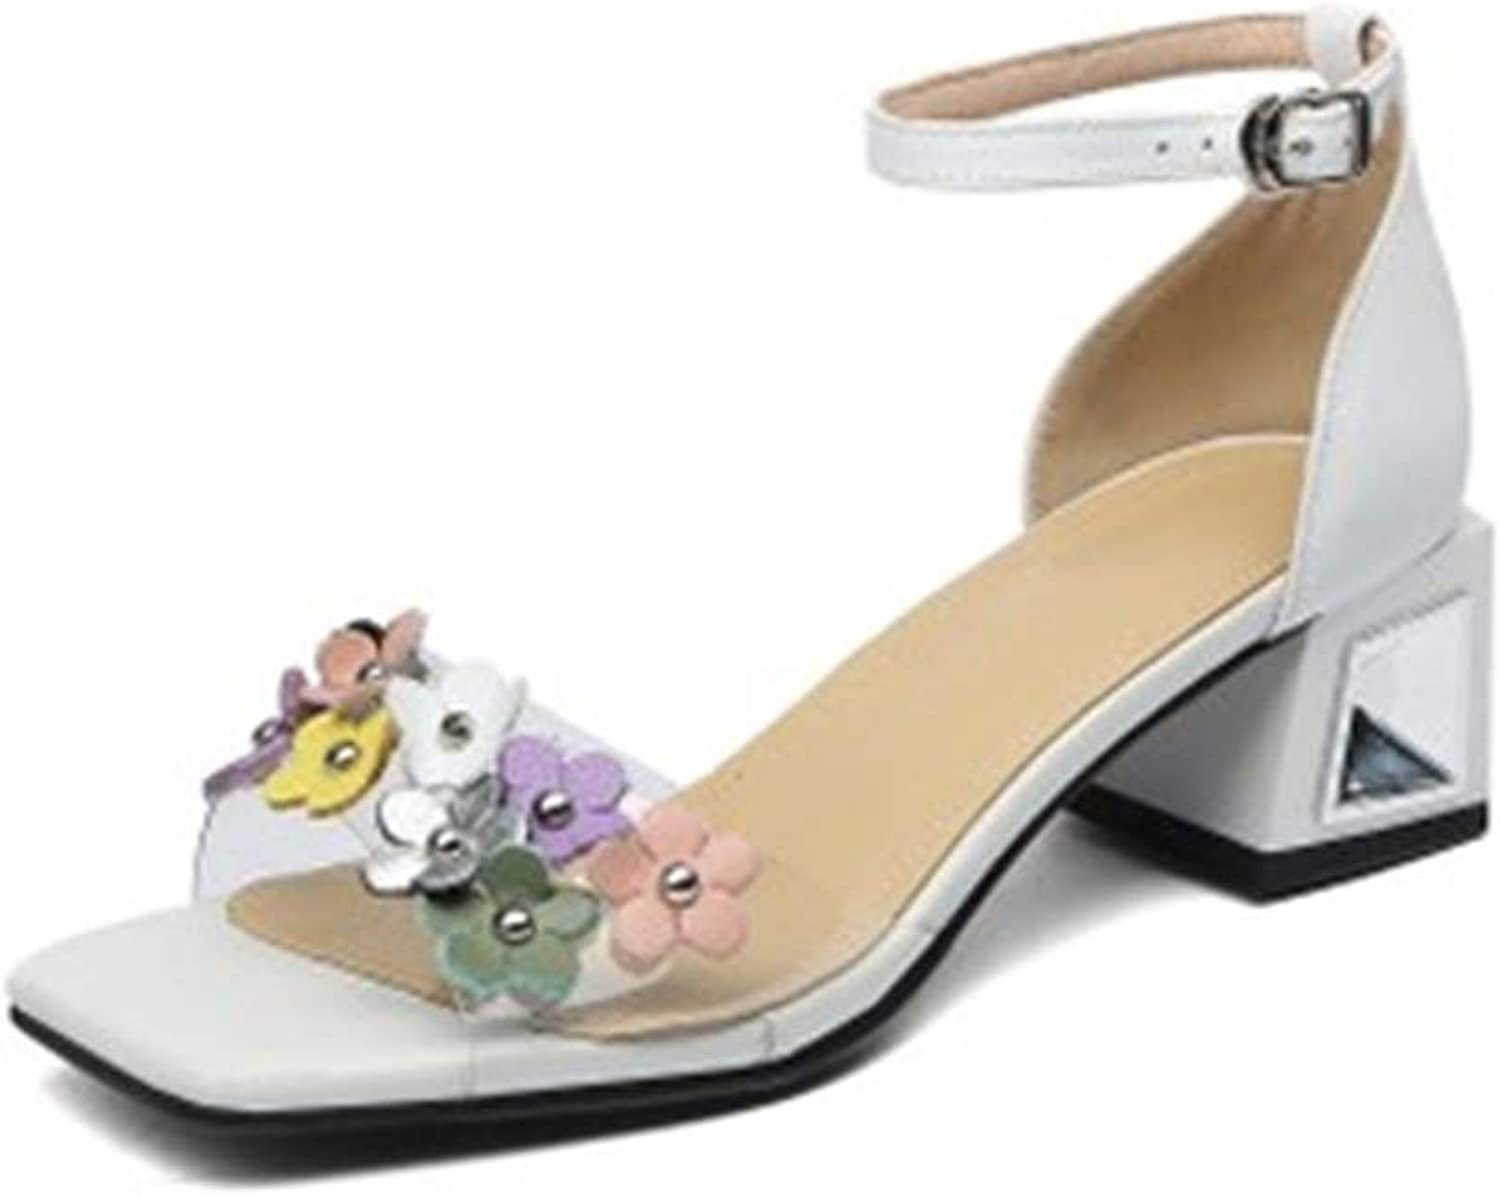 Flower Perspex Heels Cow Leather Buckle Strap Open Toe White Party Heeled Sandals Summer